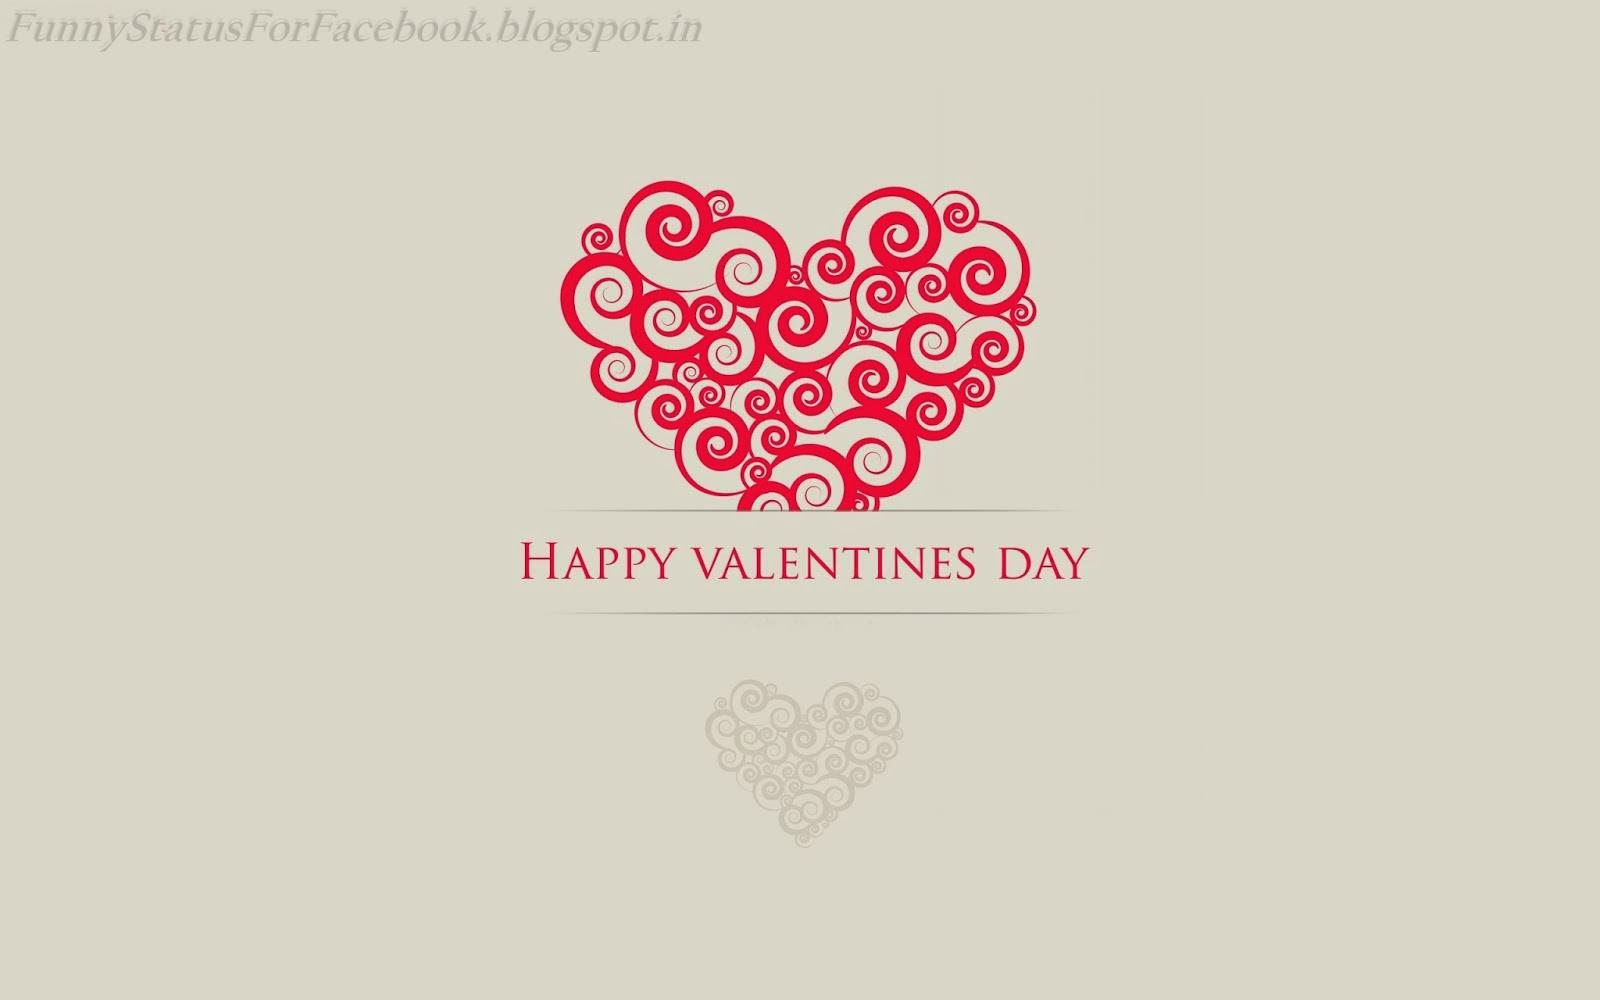 Beautiful Valentines Wallpaper With Best Wishes ECards. 1600 x 1000.Valentine Hamariweb Funny Messages Mobiles